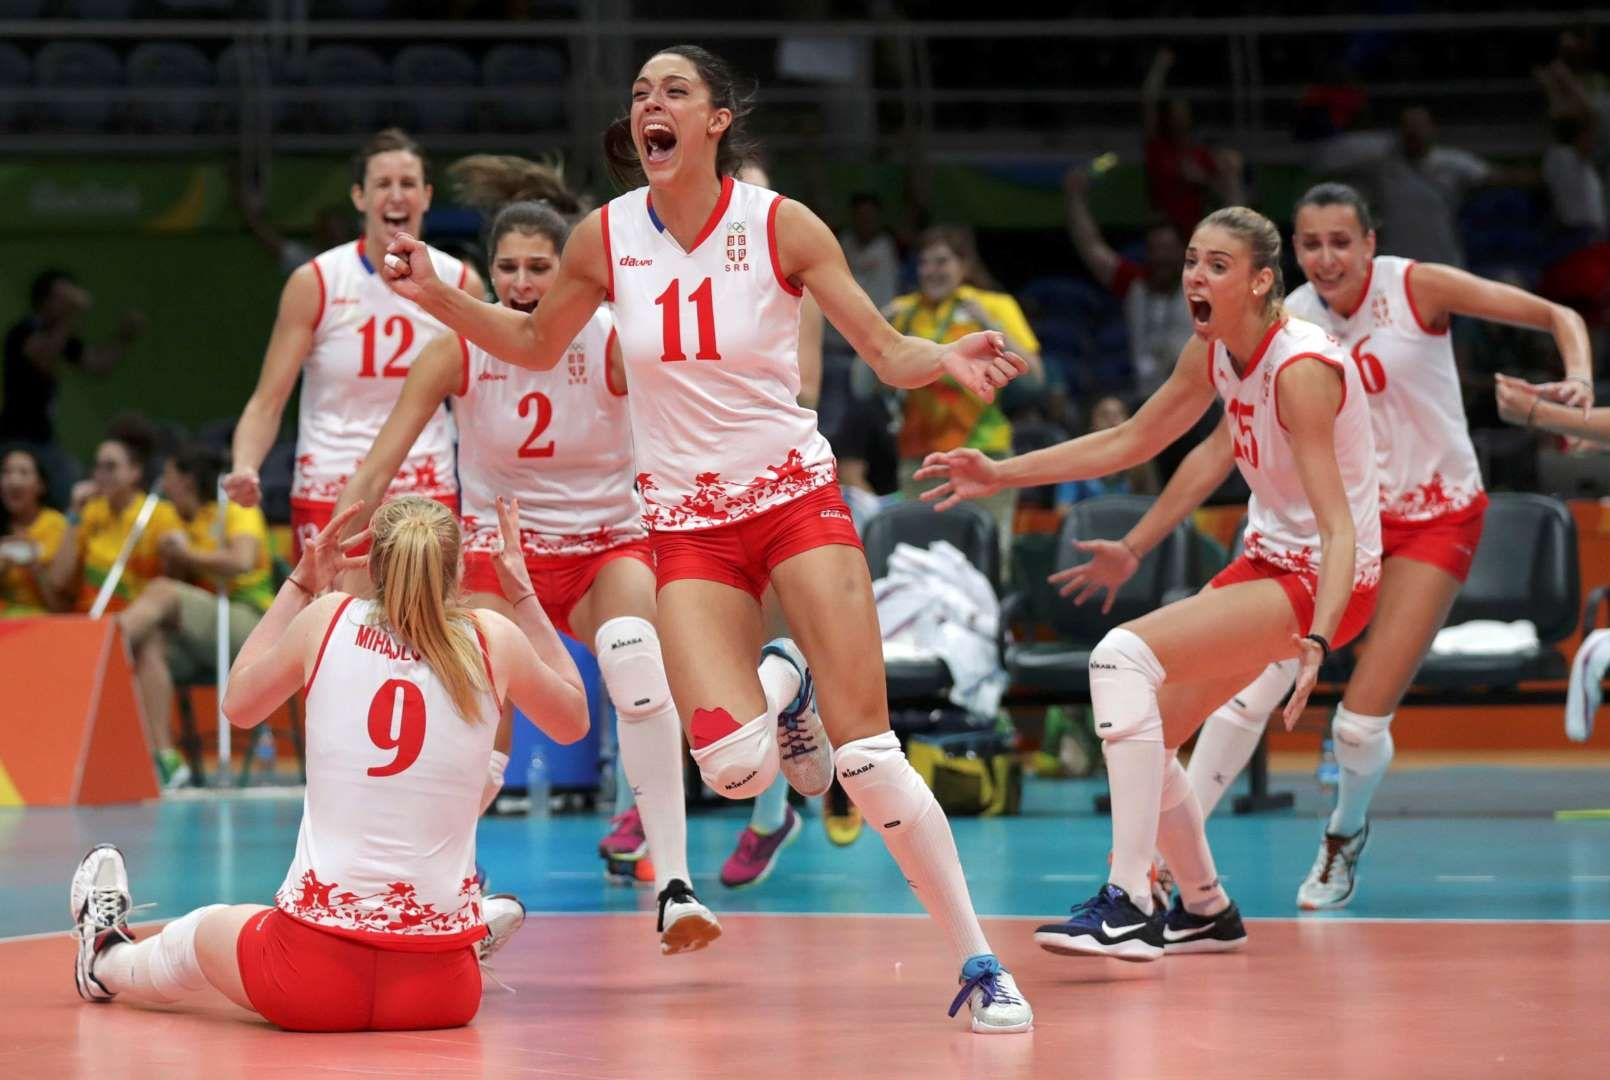 On To The Final Serbian Team Volleyball Players Celebrate Defeating The United States In Their Semifinal Mat Summer Olympics Olympics Summer Olympics 2016